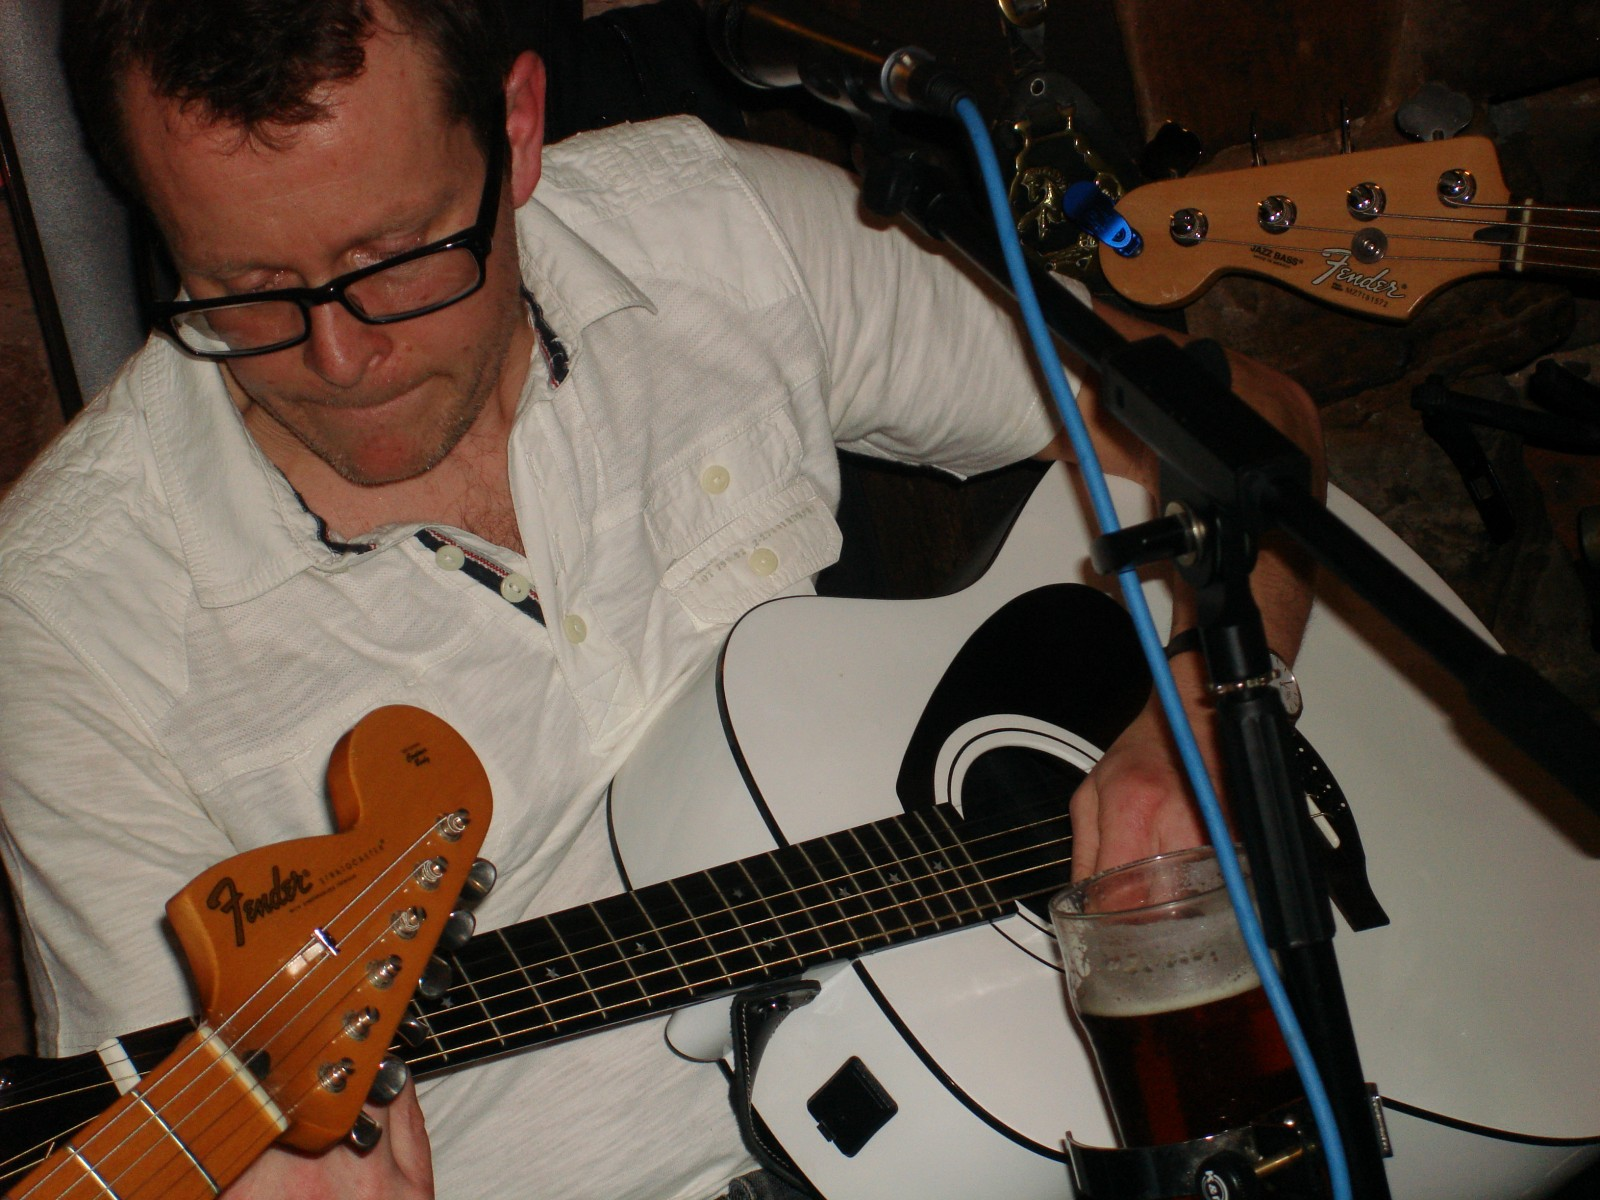 Gary Stewart Smith jams with Liquorice Allstars